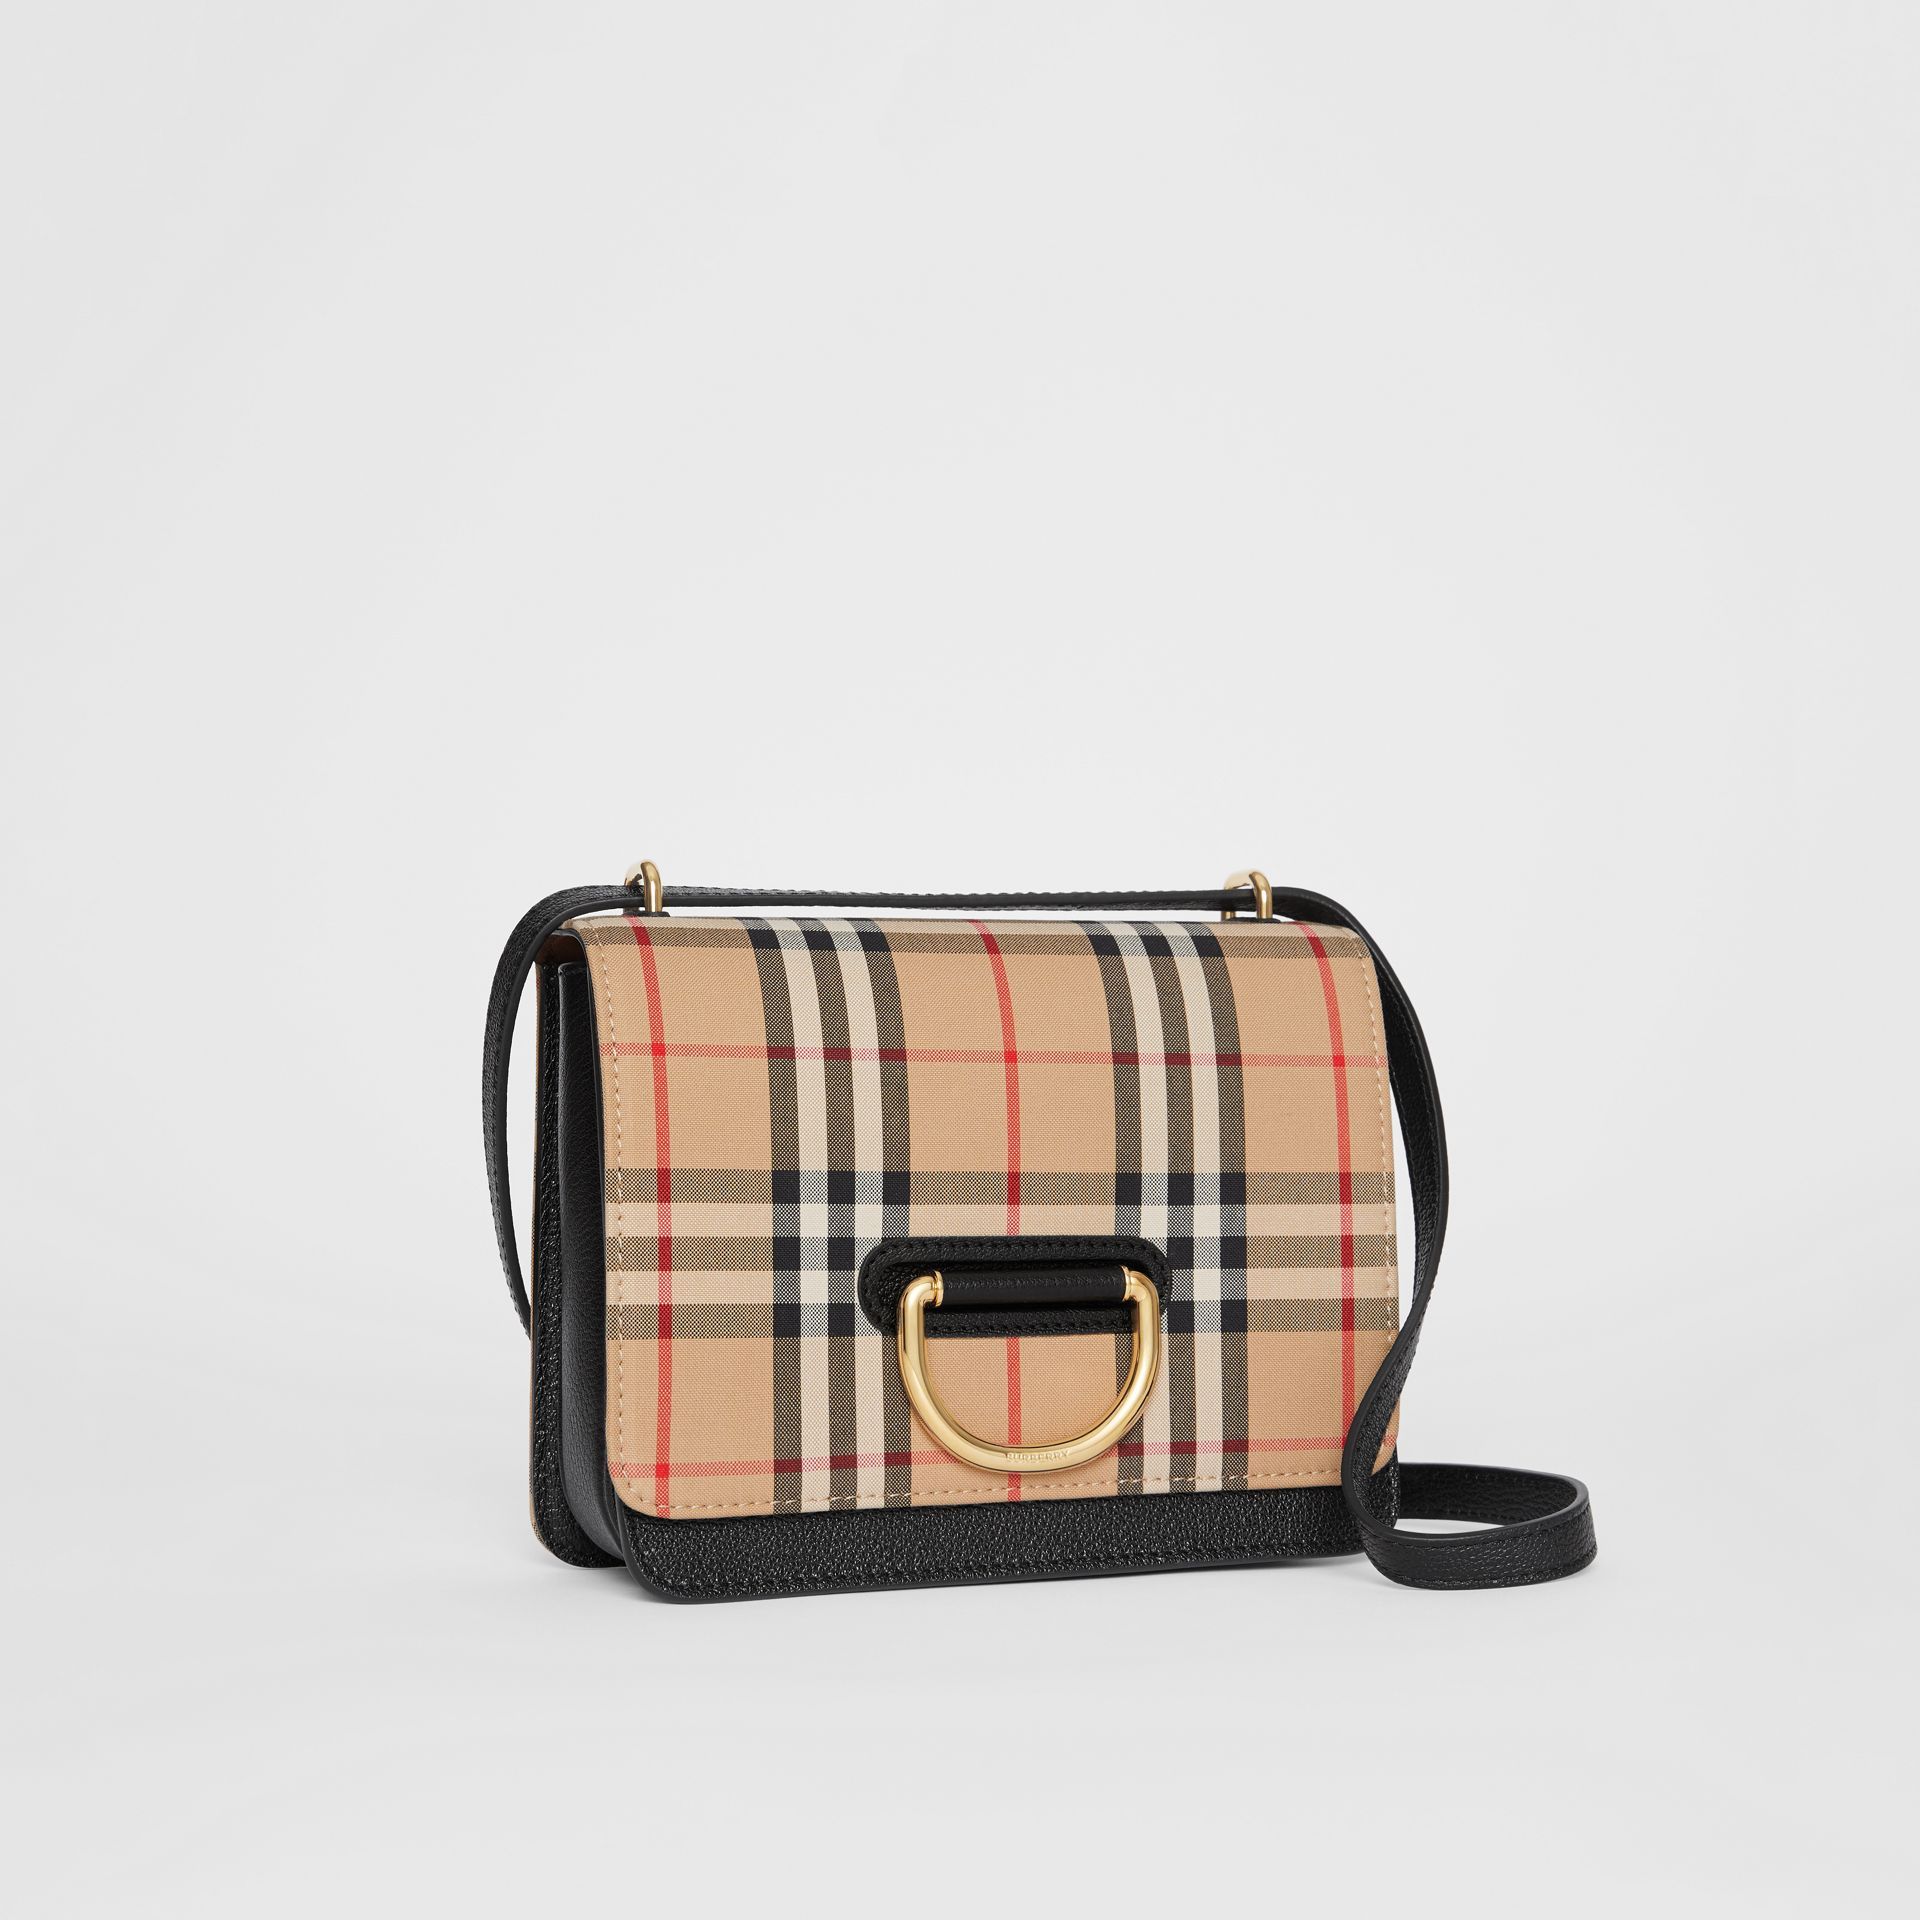 The Small Vintage Check and Leather D-ring Bag in Black - Women | Burberry United Kingdom - gallery image 8